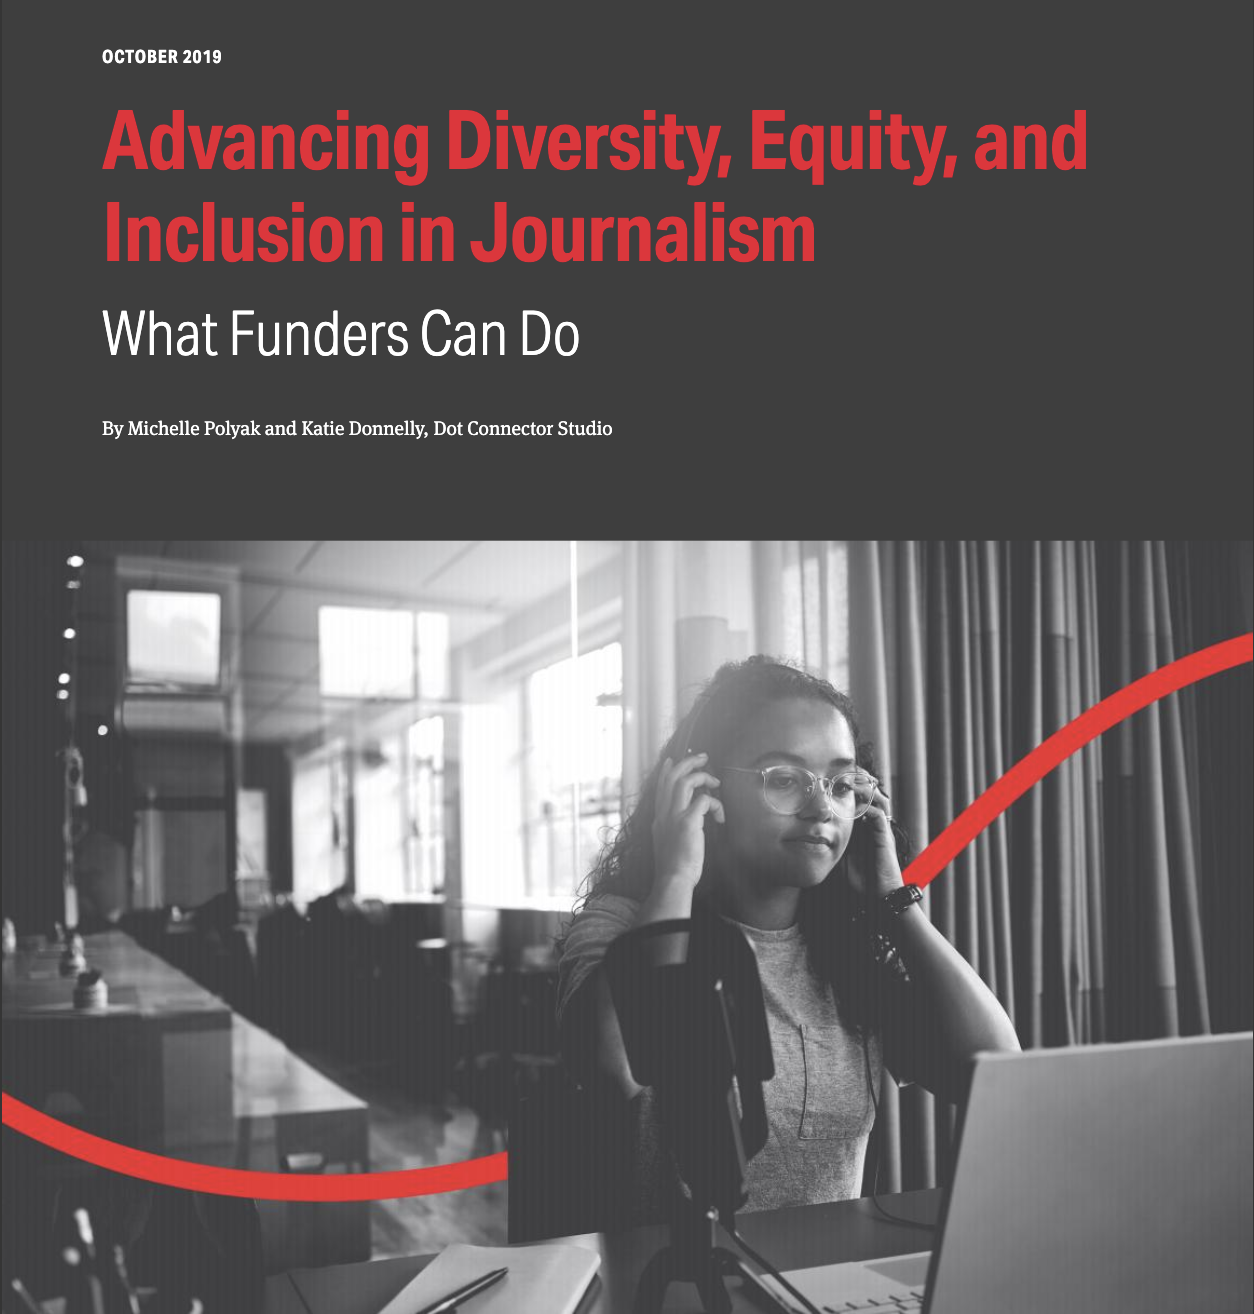 Democracy Fund & DCS Release New Report on DEI in Journalism Along with Tools for the Field